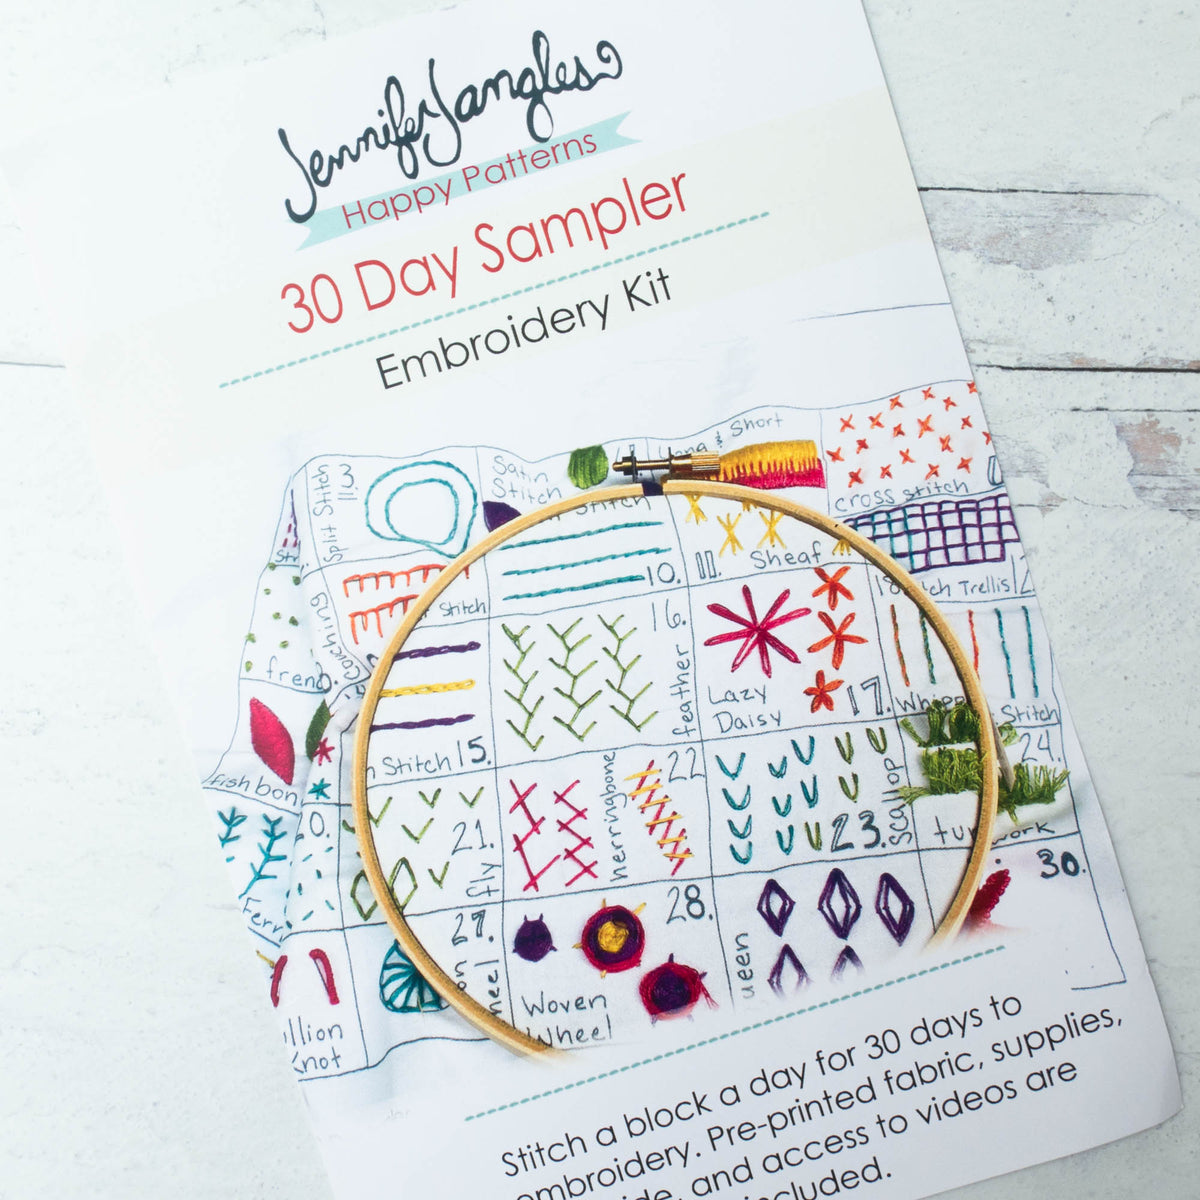 Jennifer Jangles 30 Day Sampler Embroidery Kit